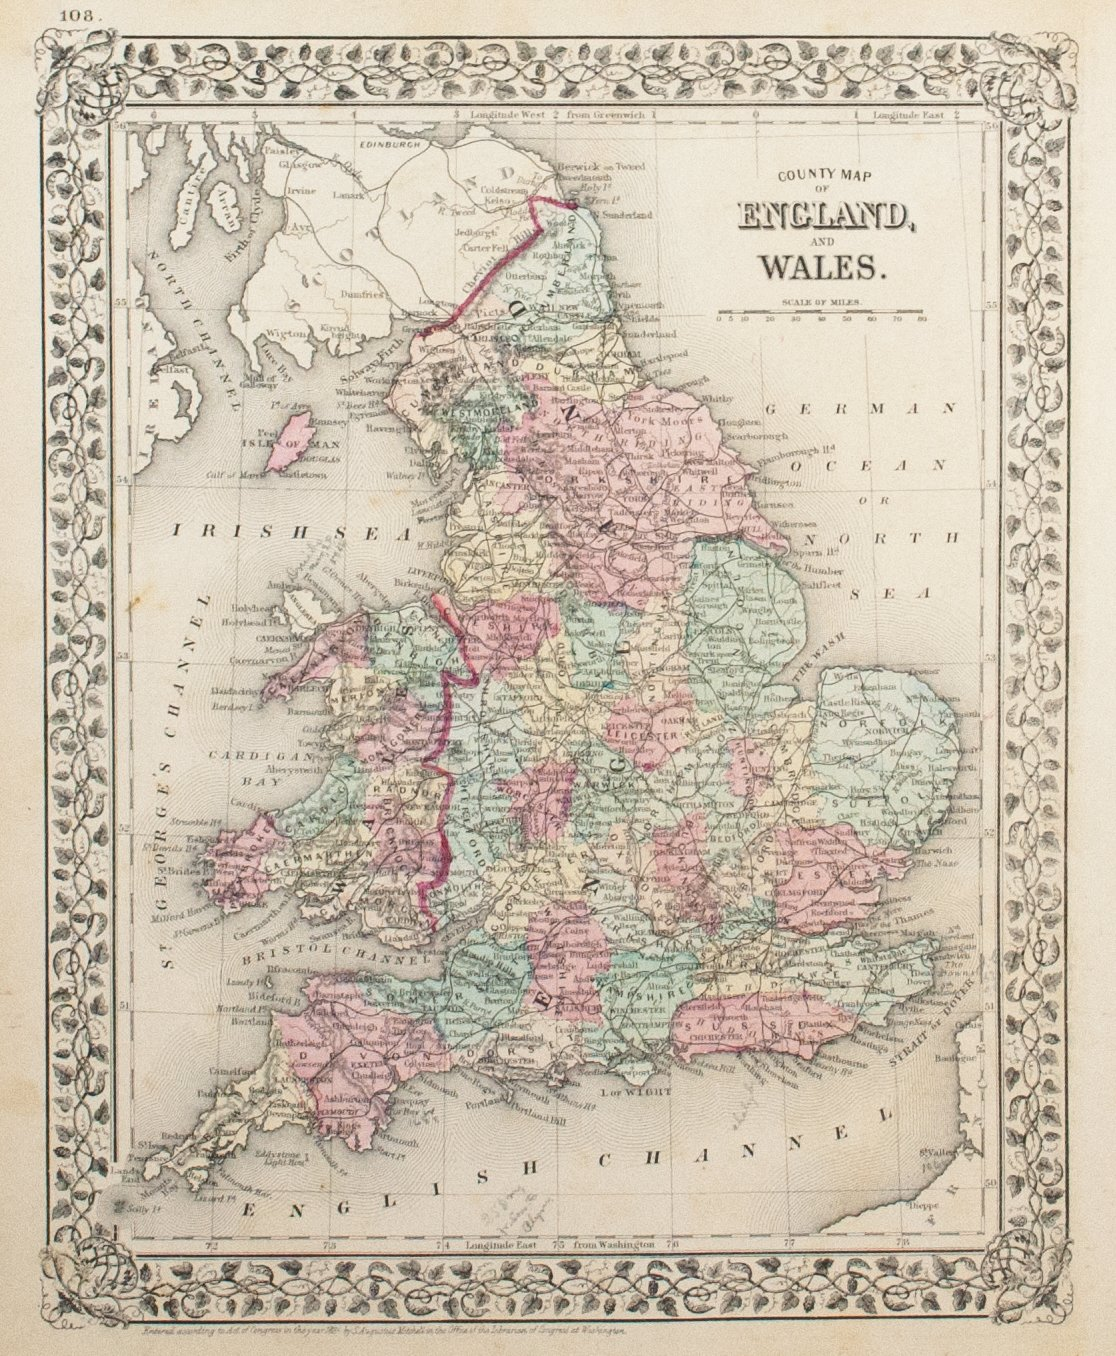 1881 County Map of England and Wales - S Mitchell Jr